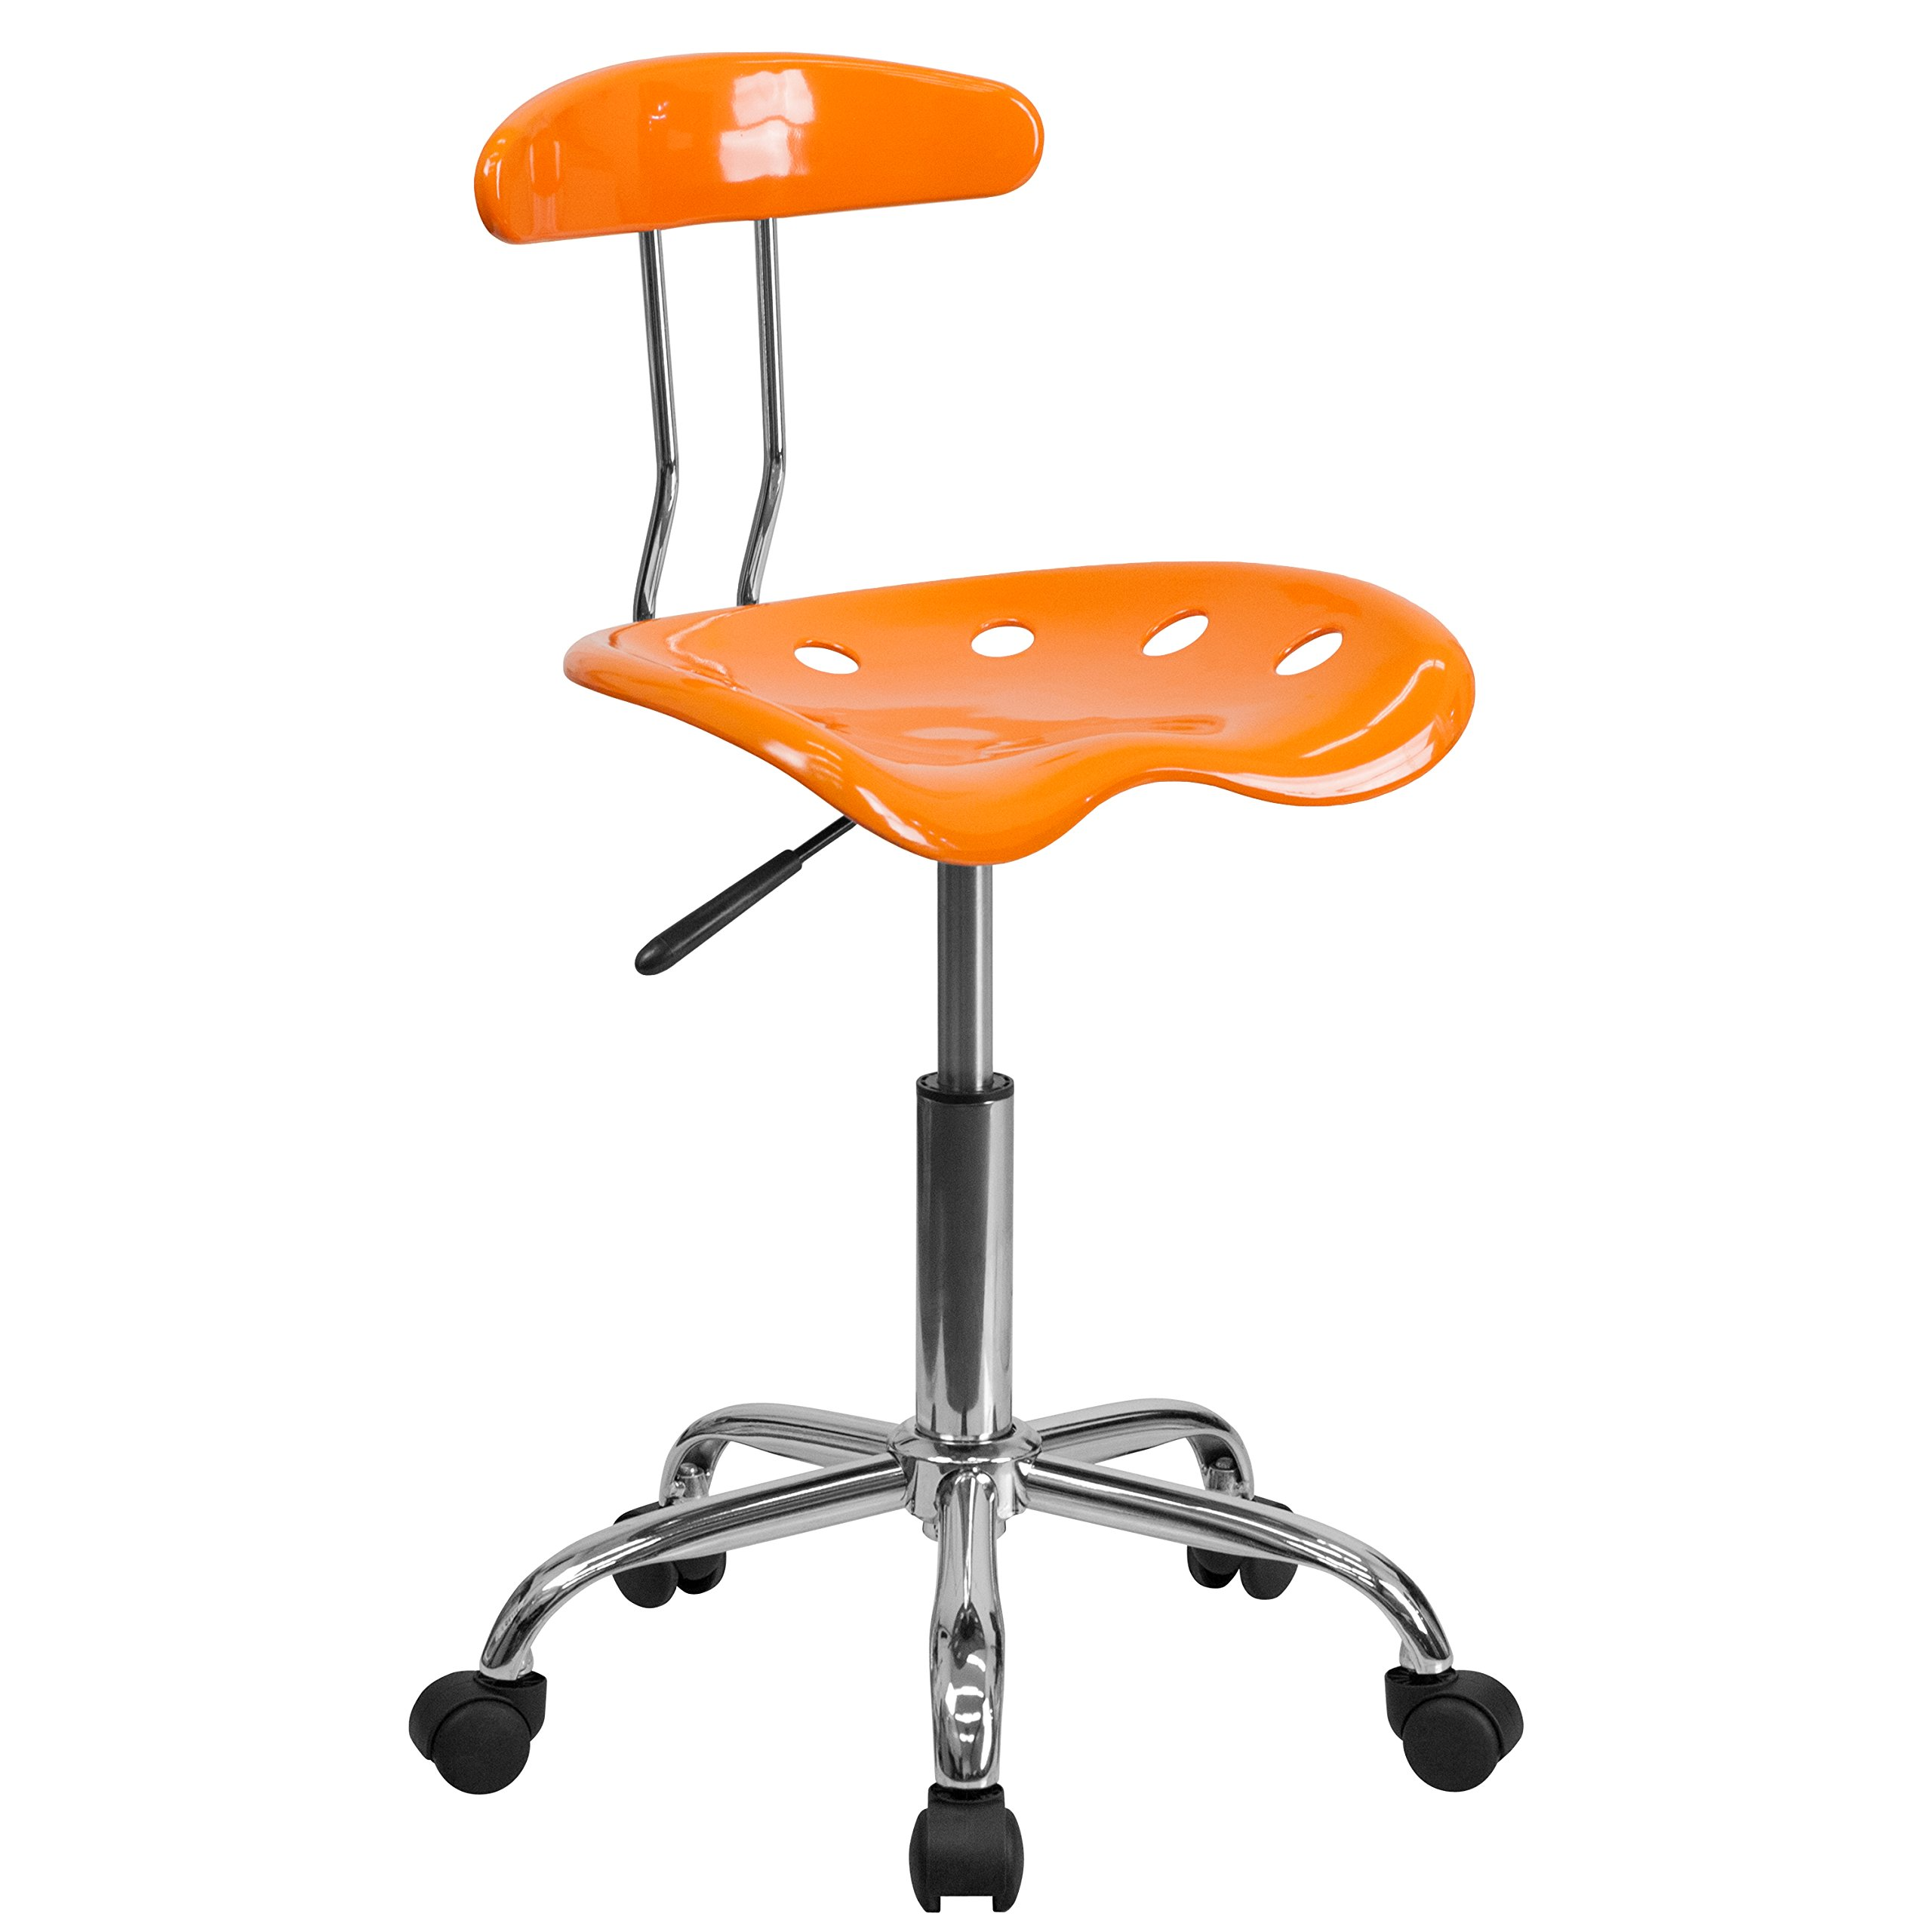 Vibrant Orange and Chrome Swivel Task Office Chair with Tractor Seat